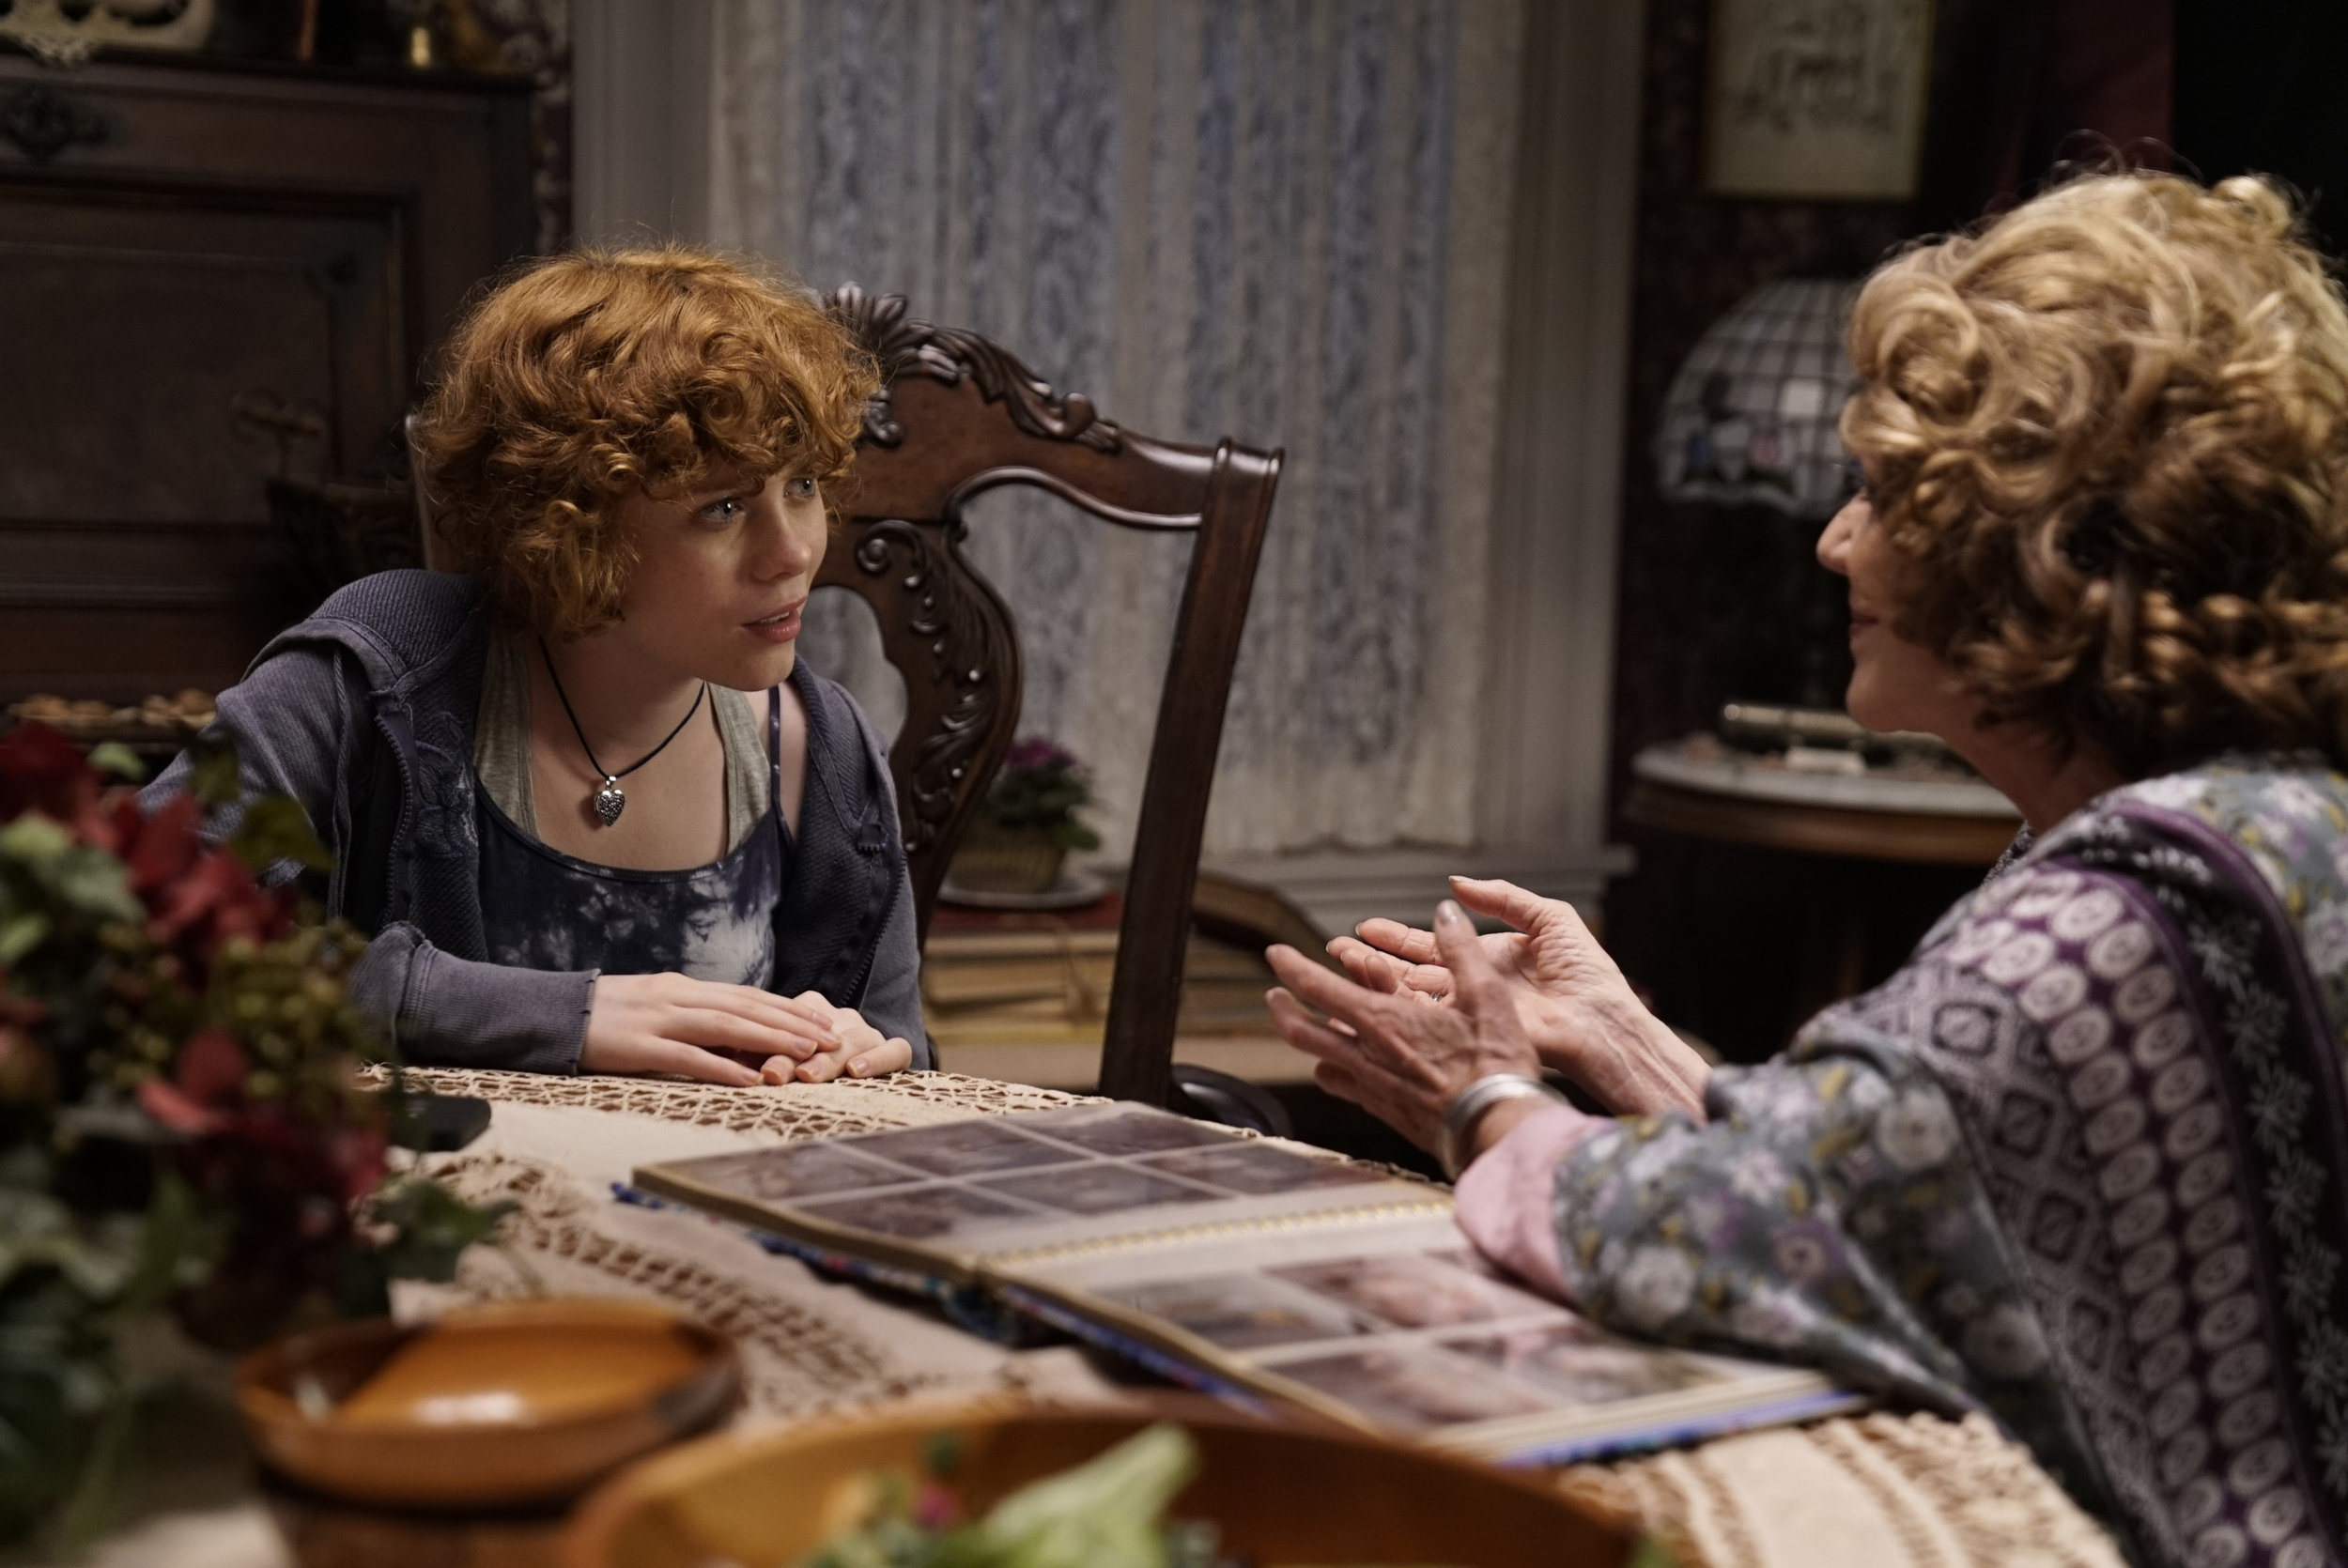 """Nancy Drew (Sophia Lillis, left) learns about the history of an old, and possibly haunted, house from Flora (Linda Lavin), in a scene from """"Nancy Drew and the Hidden Staircase."""" (Photo courtesy Warner Bros. Pictures)"""